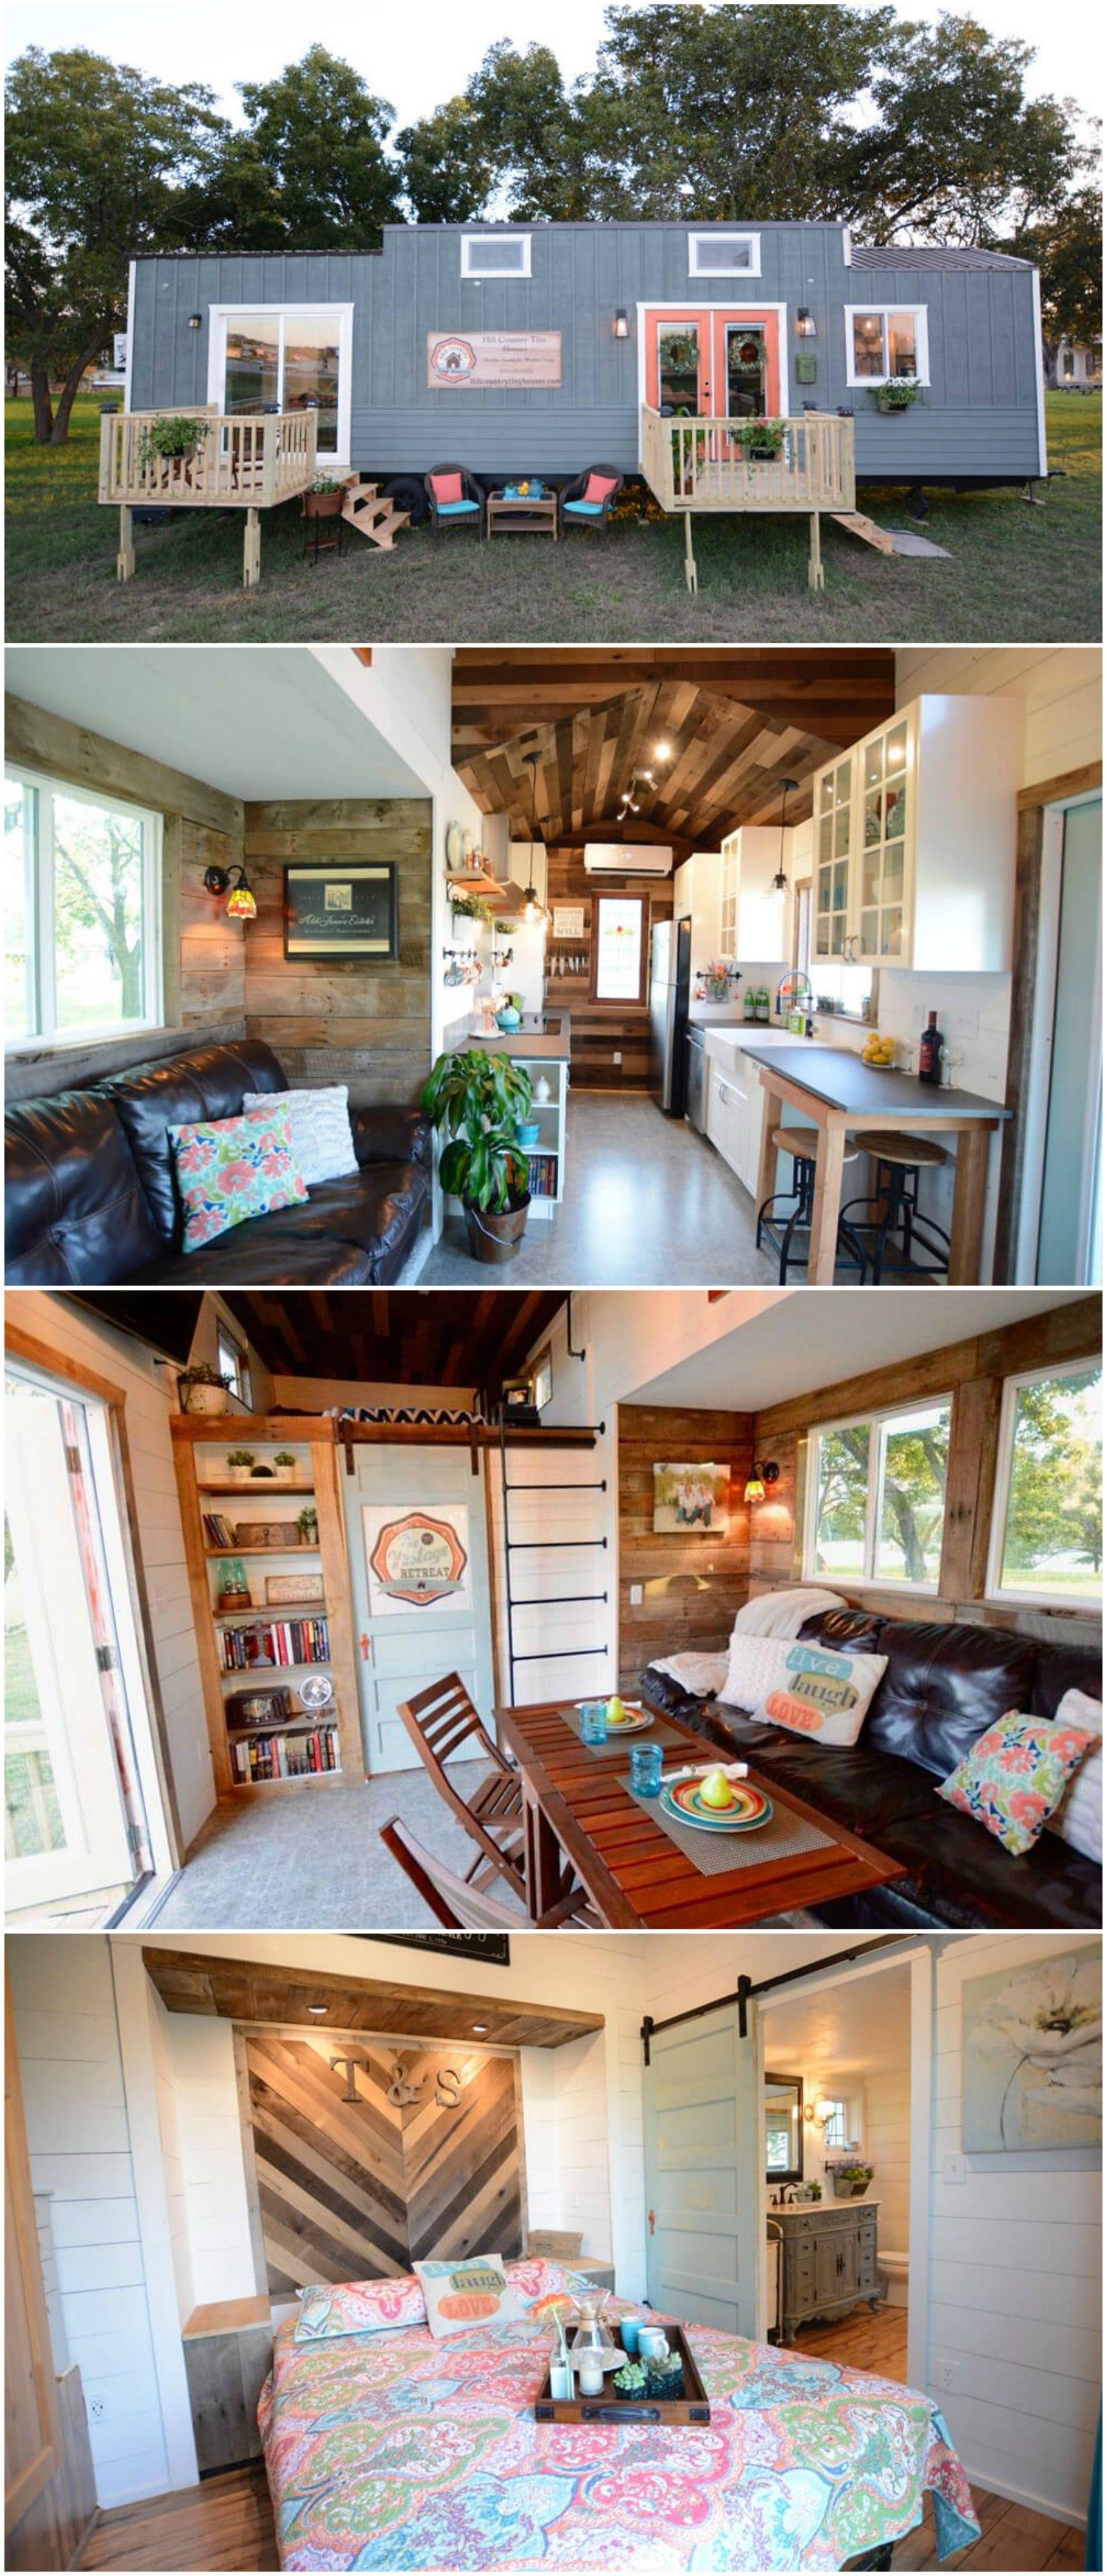 The Vintage Retreat is a wonderful tiny house built by Texasbased